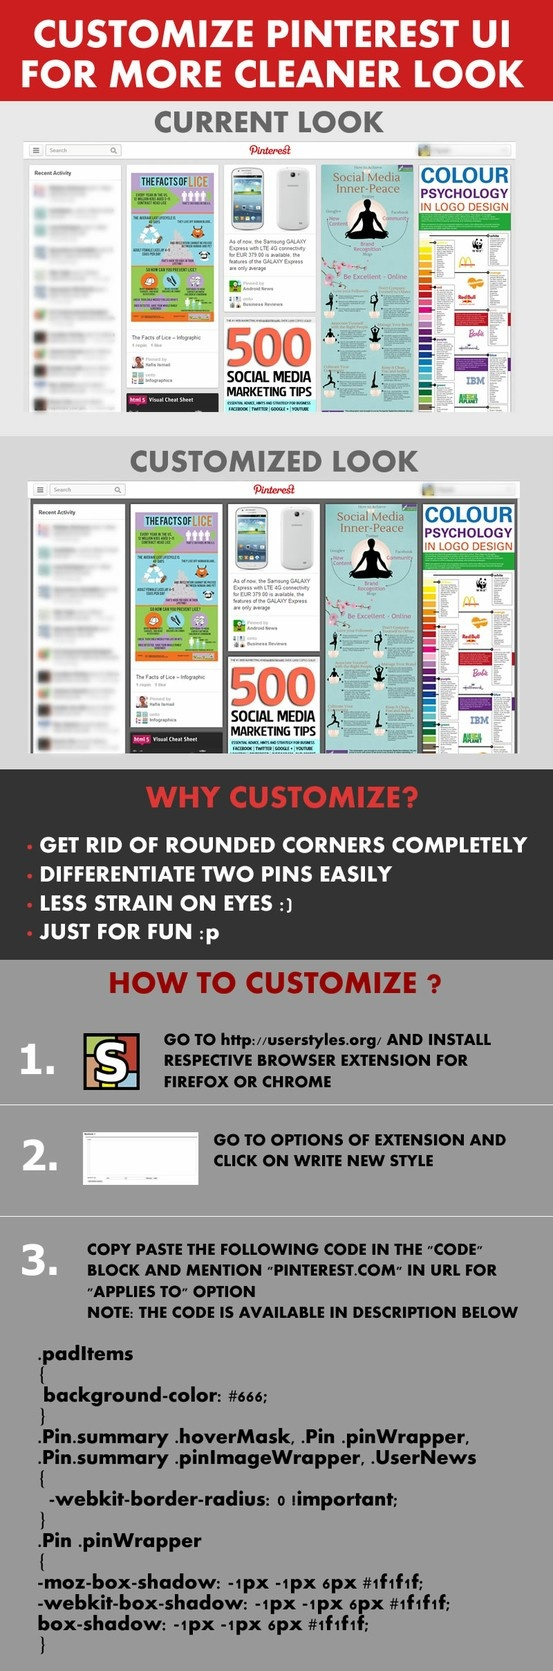 Customize Pinterest for better